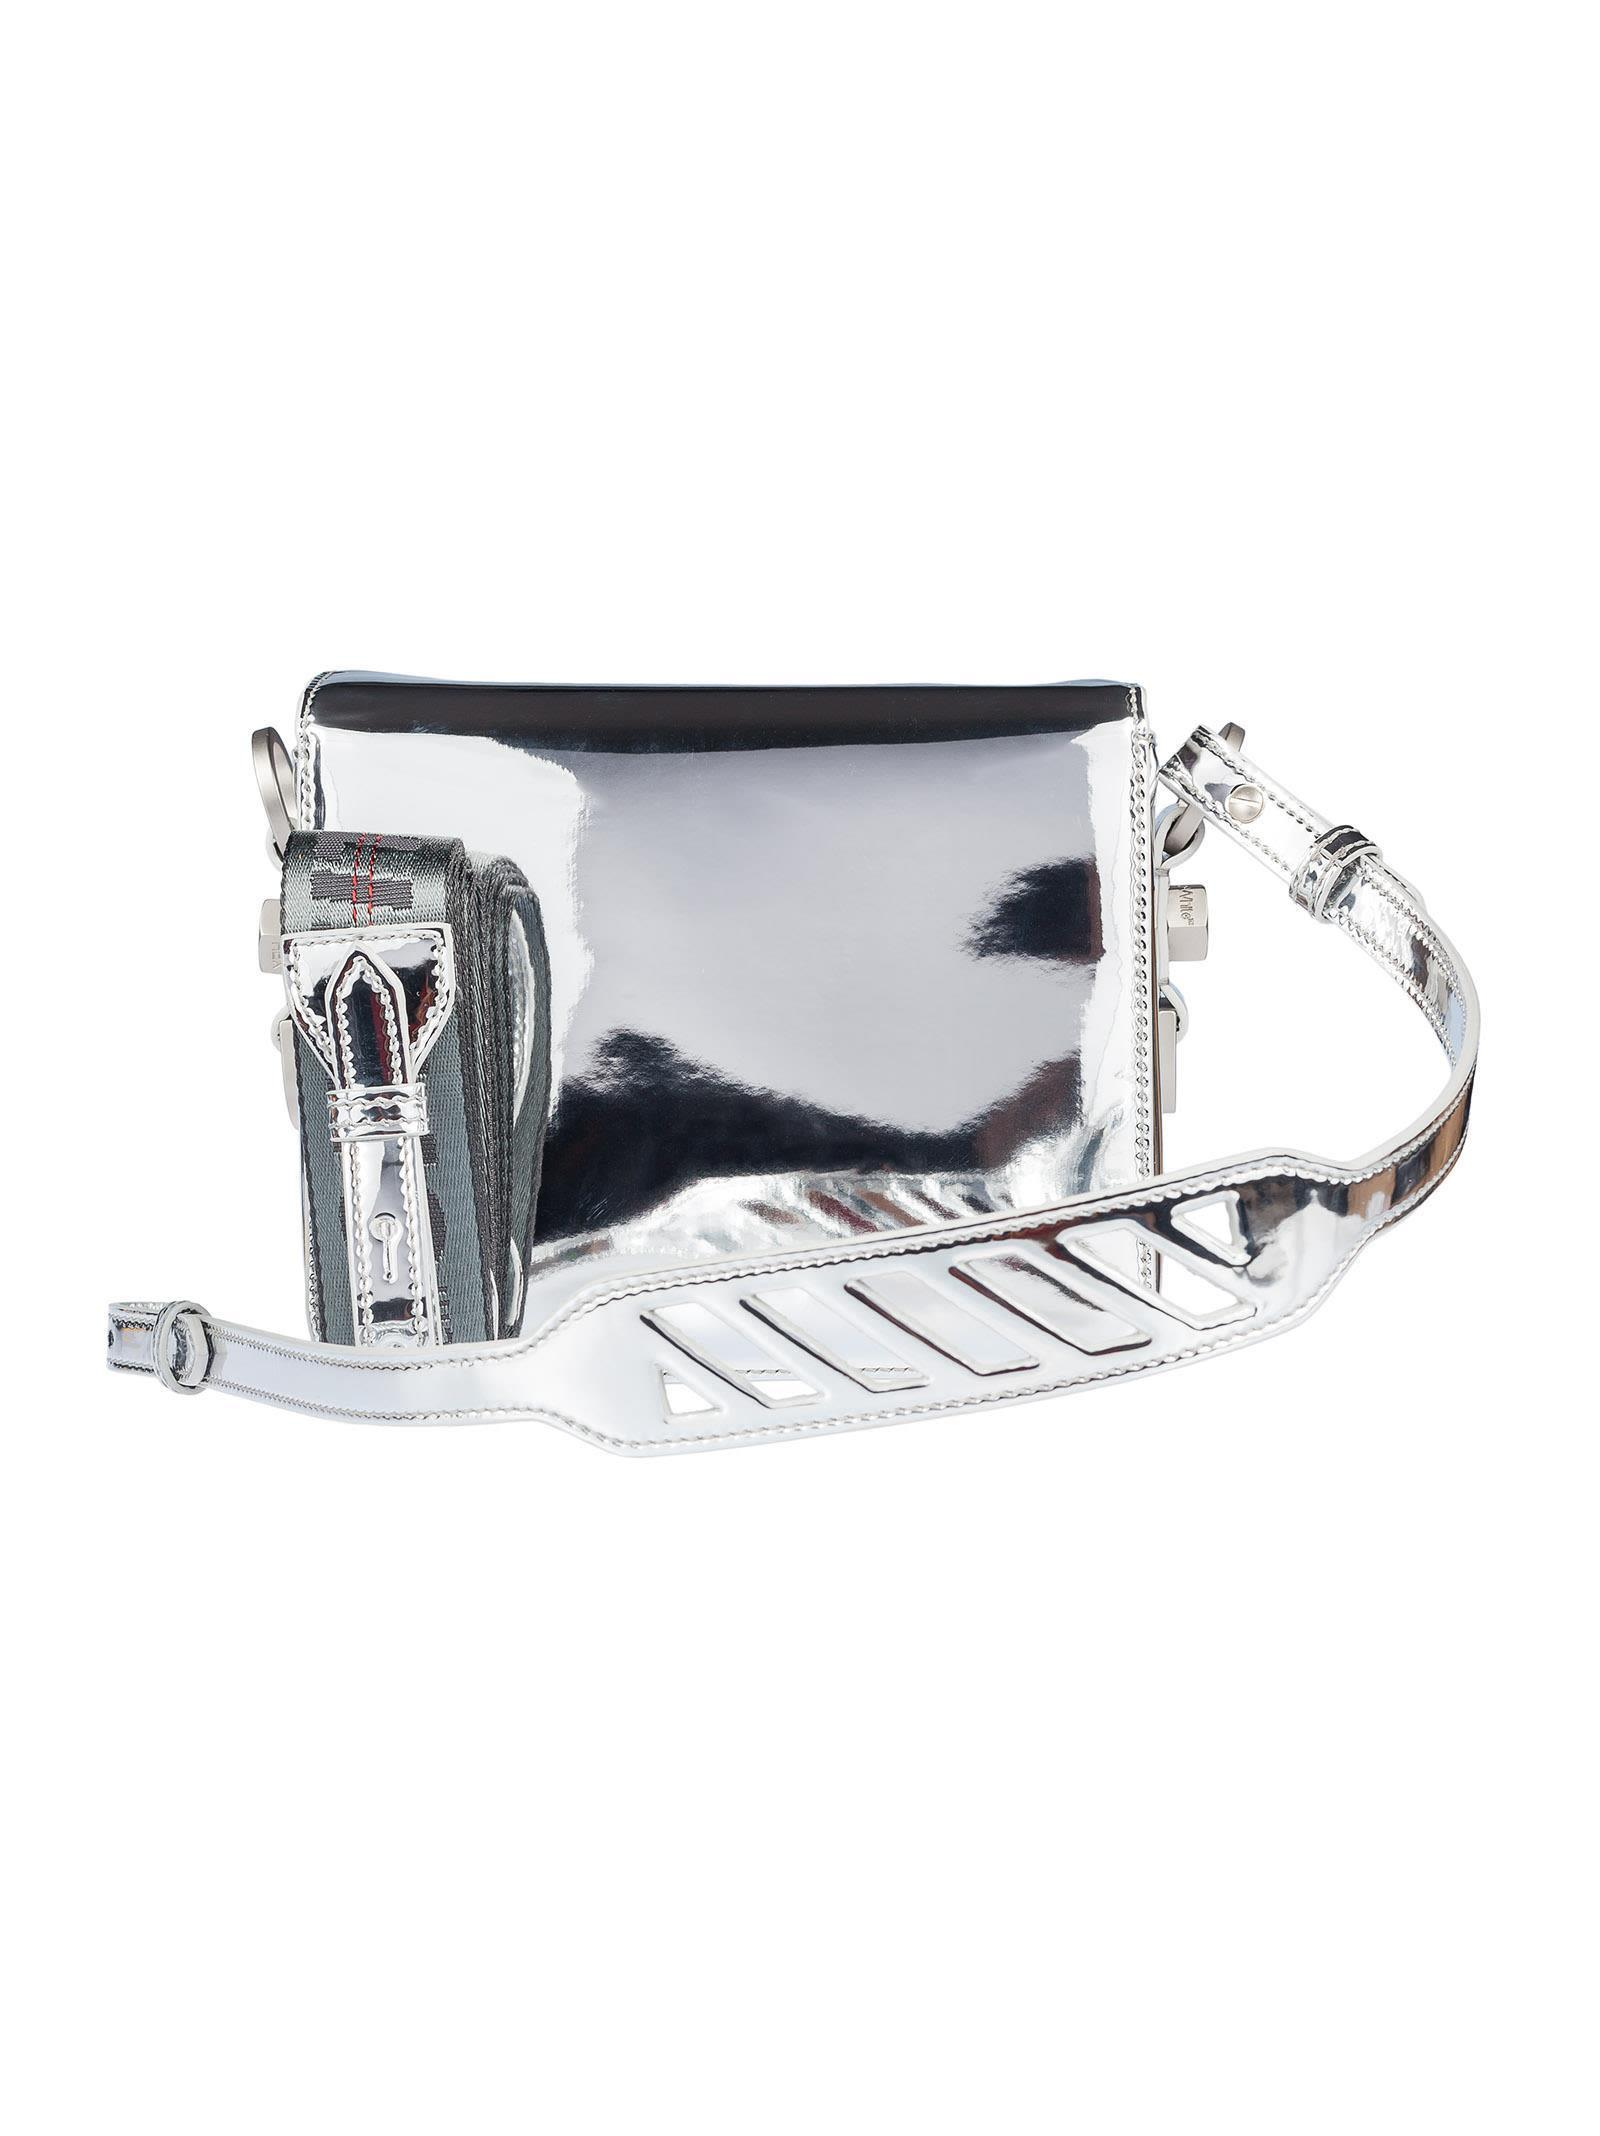 【VOGUE掲載】Off-White★Binder Clip Mirror ショルダーバッグ